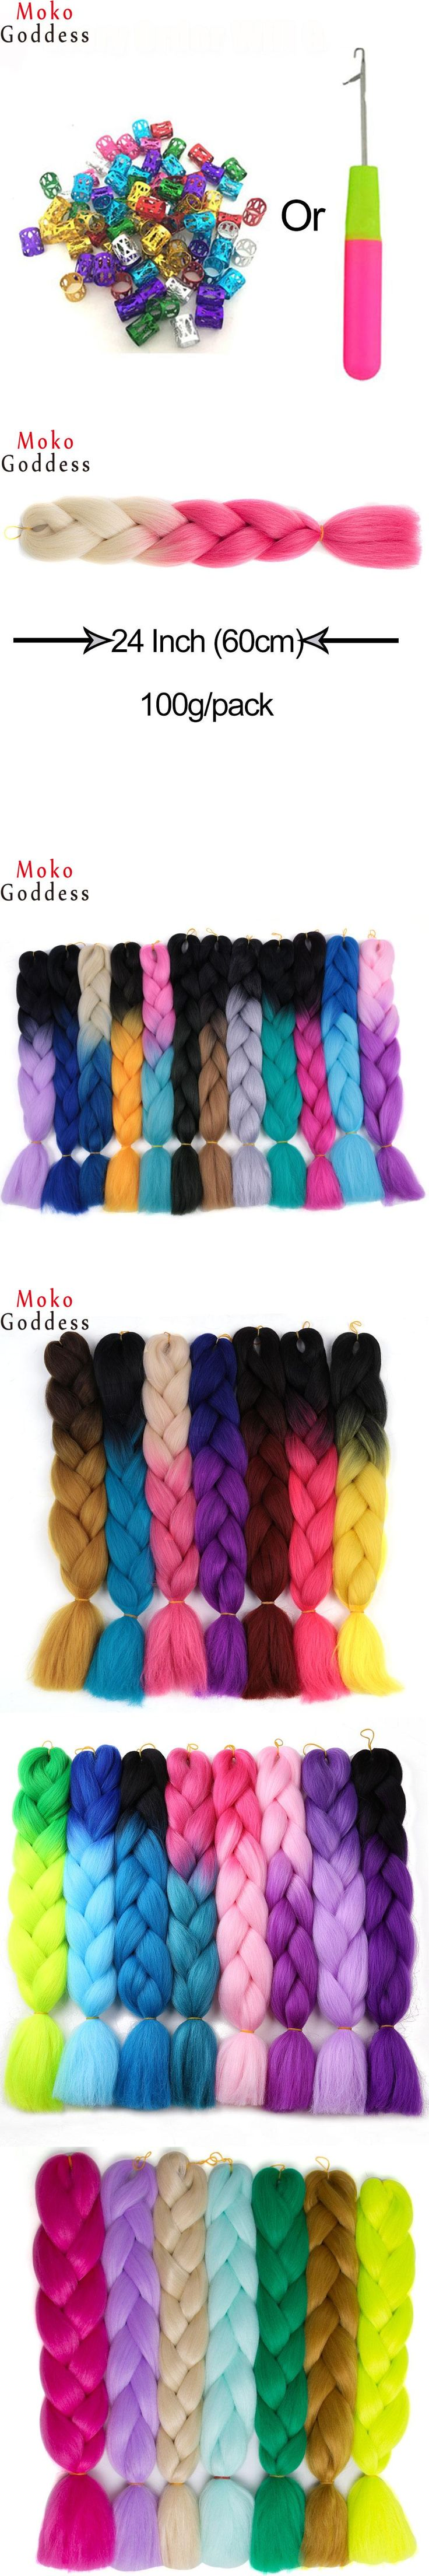 Ali MoKoGoddess Hair Products Ombre Braiding Hair Extensions 24 Inch 100g/pc Synthetic High Temperature Fiber Jumbo Braids